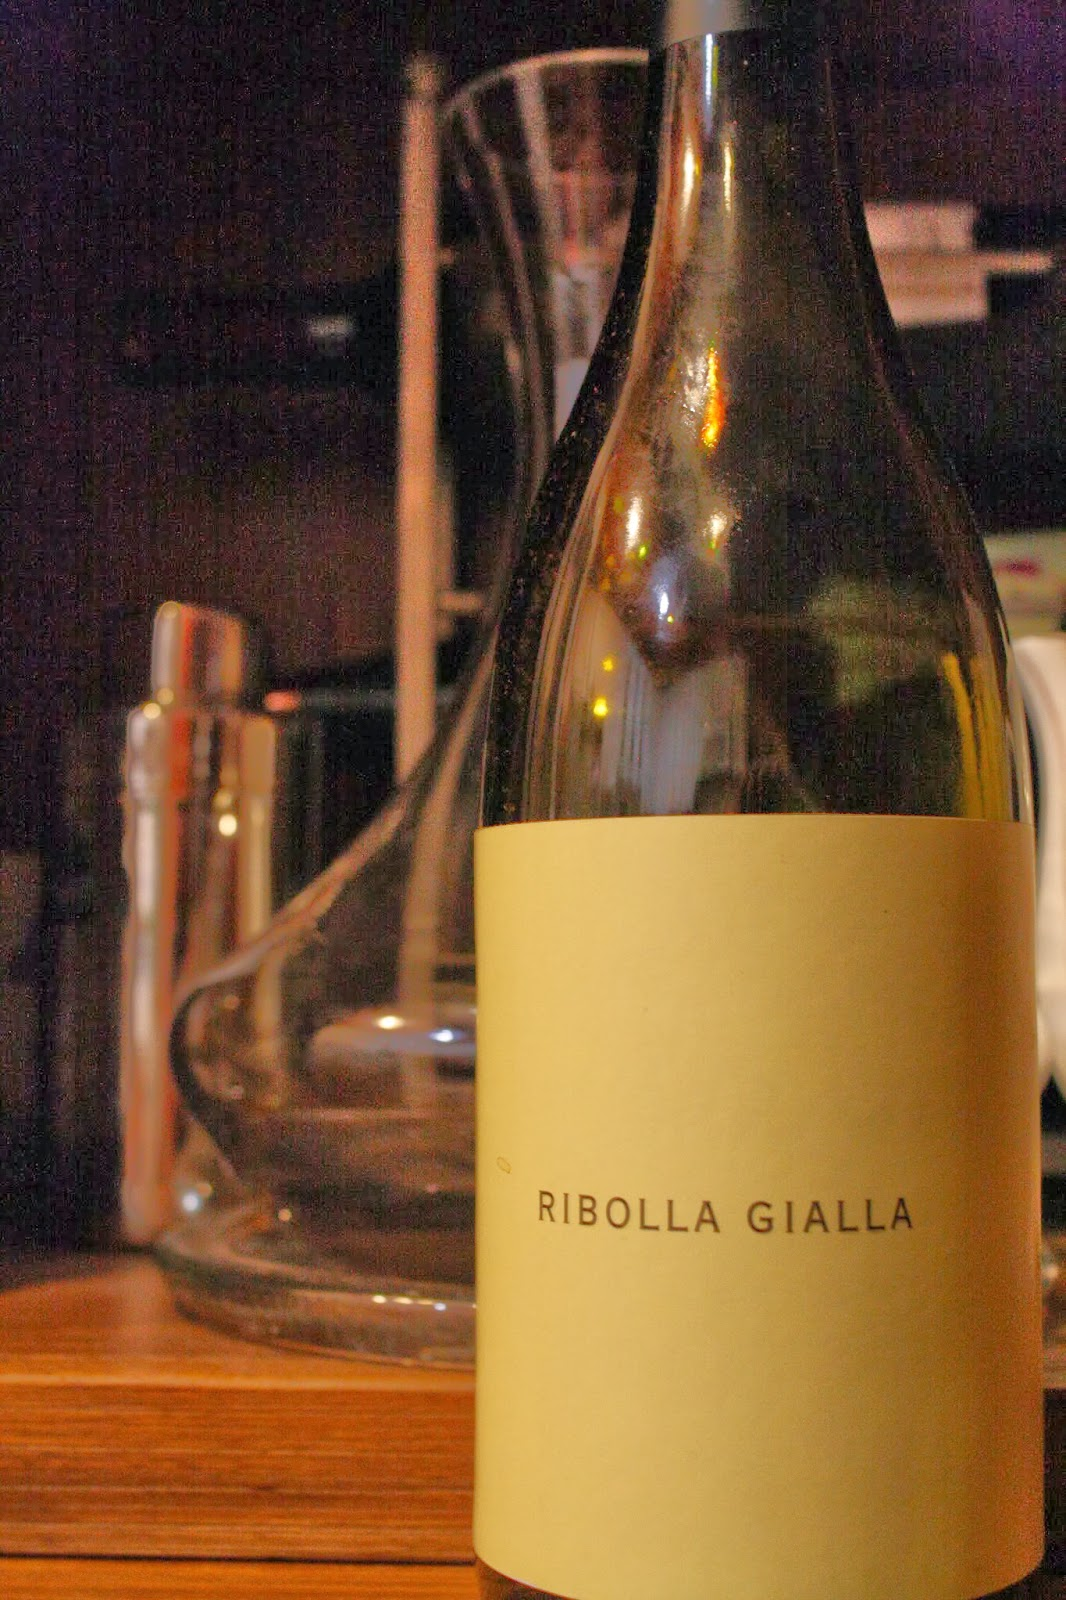 Channing Daughters, Ribolla Gialla, Orange Wine